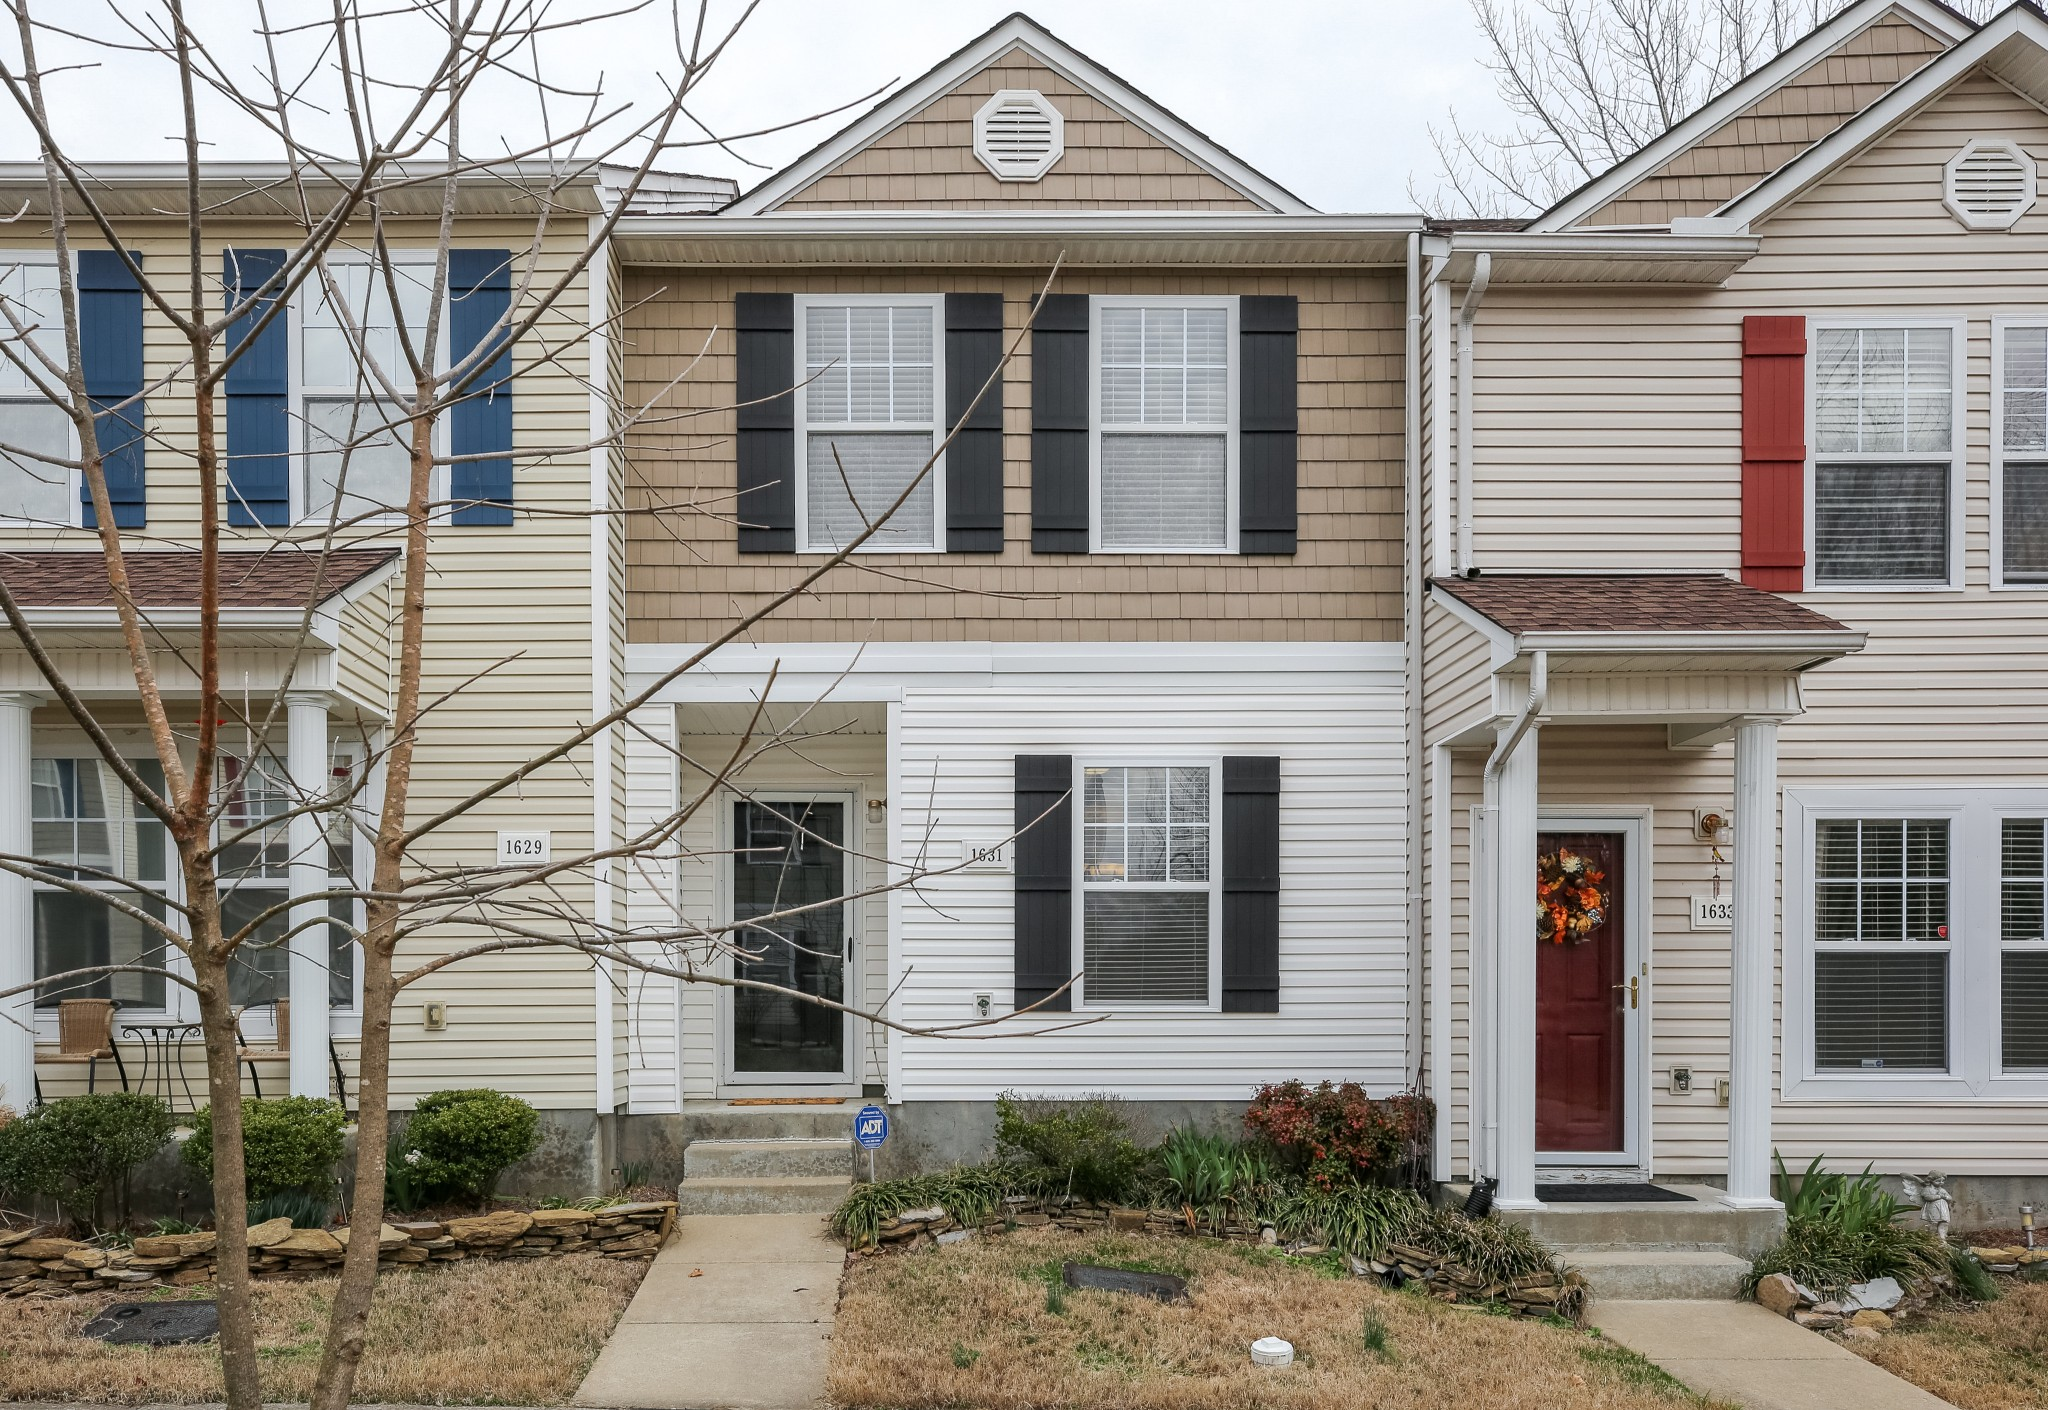 1631 Cardigan Way, Nashville-Antioch in Davidson County, TN County, TN 37013 Home for Sale